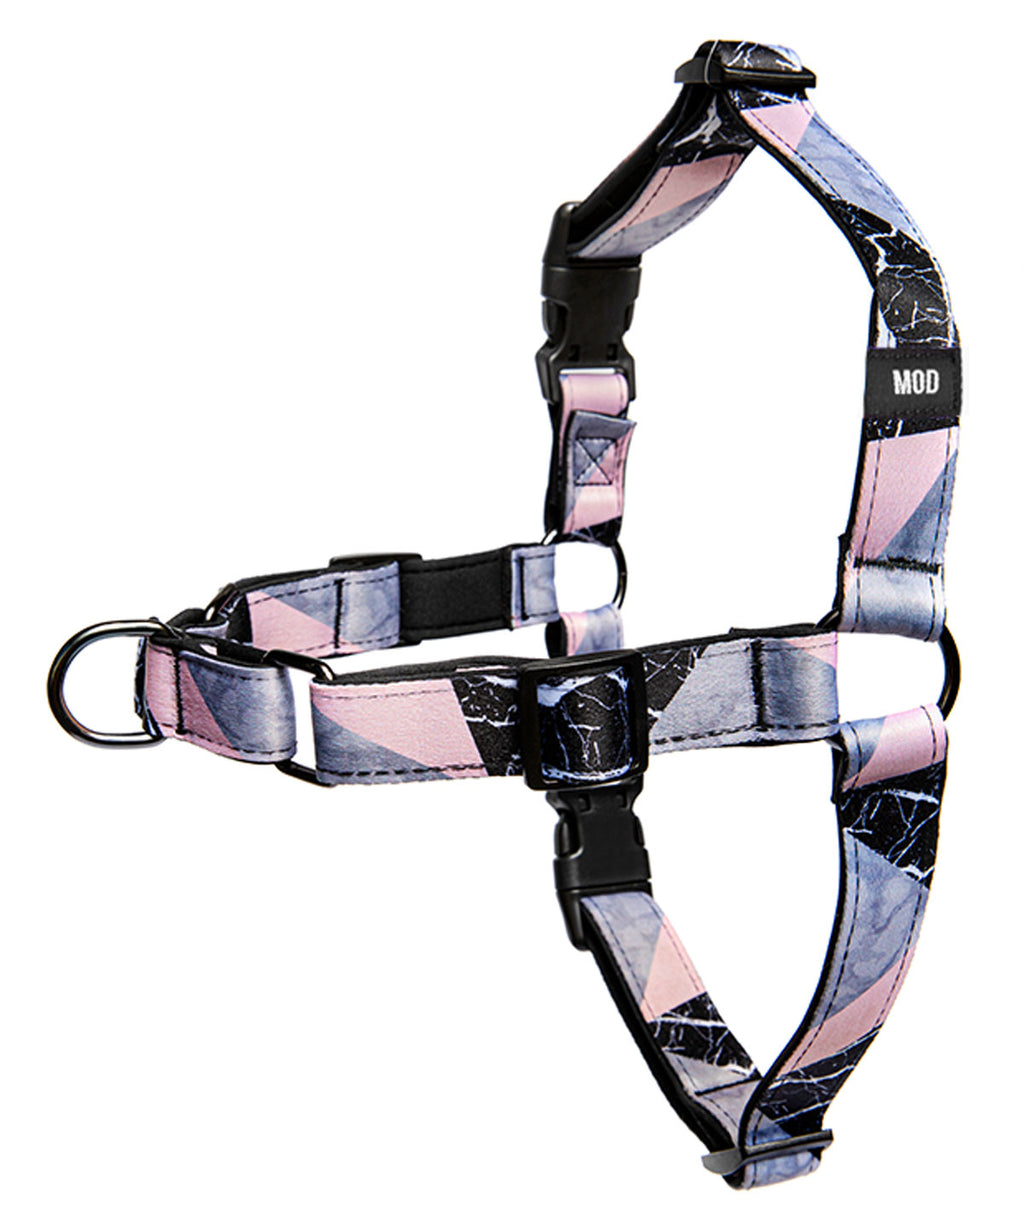 Blanco Pinco No-Pull Harness - MODLEASH